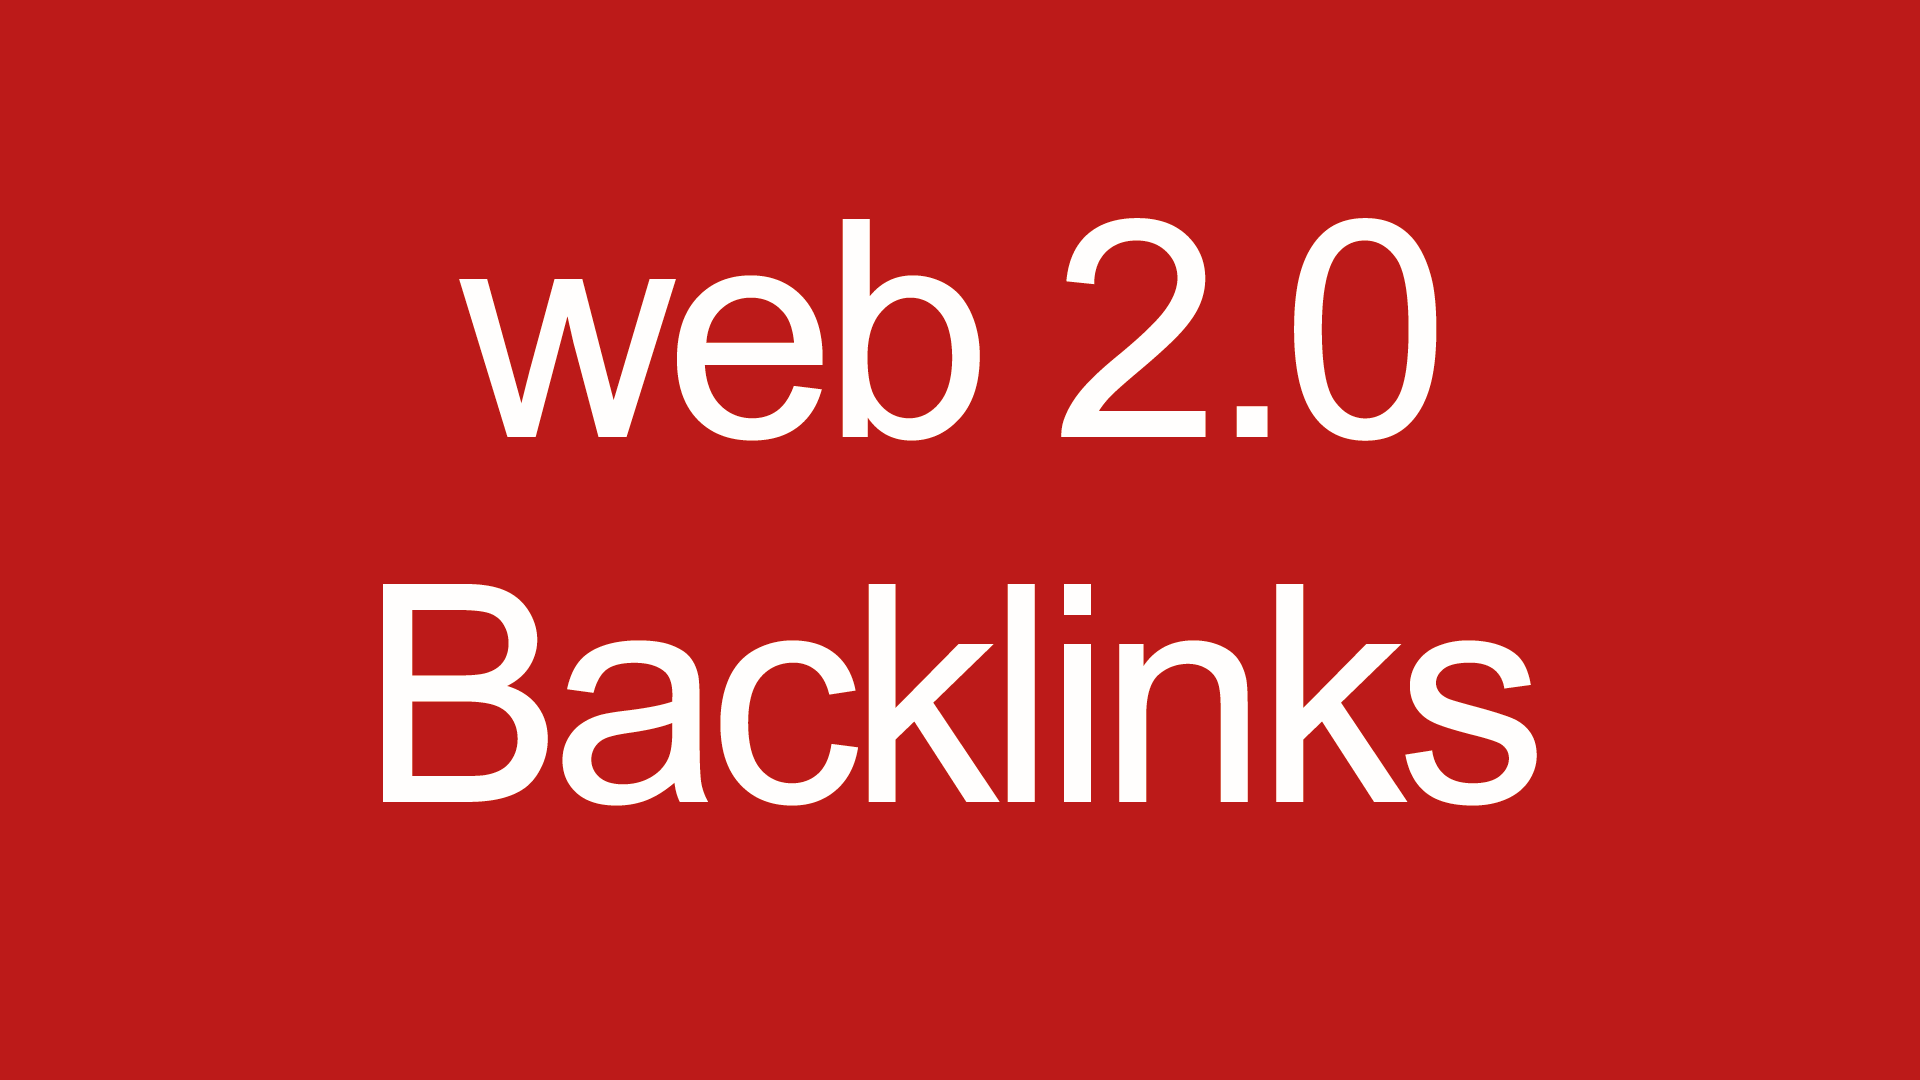 50 Web 2.0 backlinks for your site